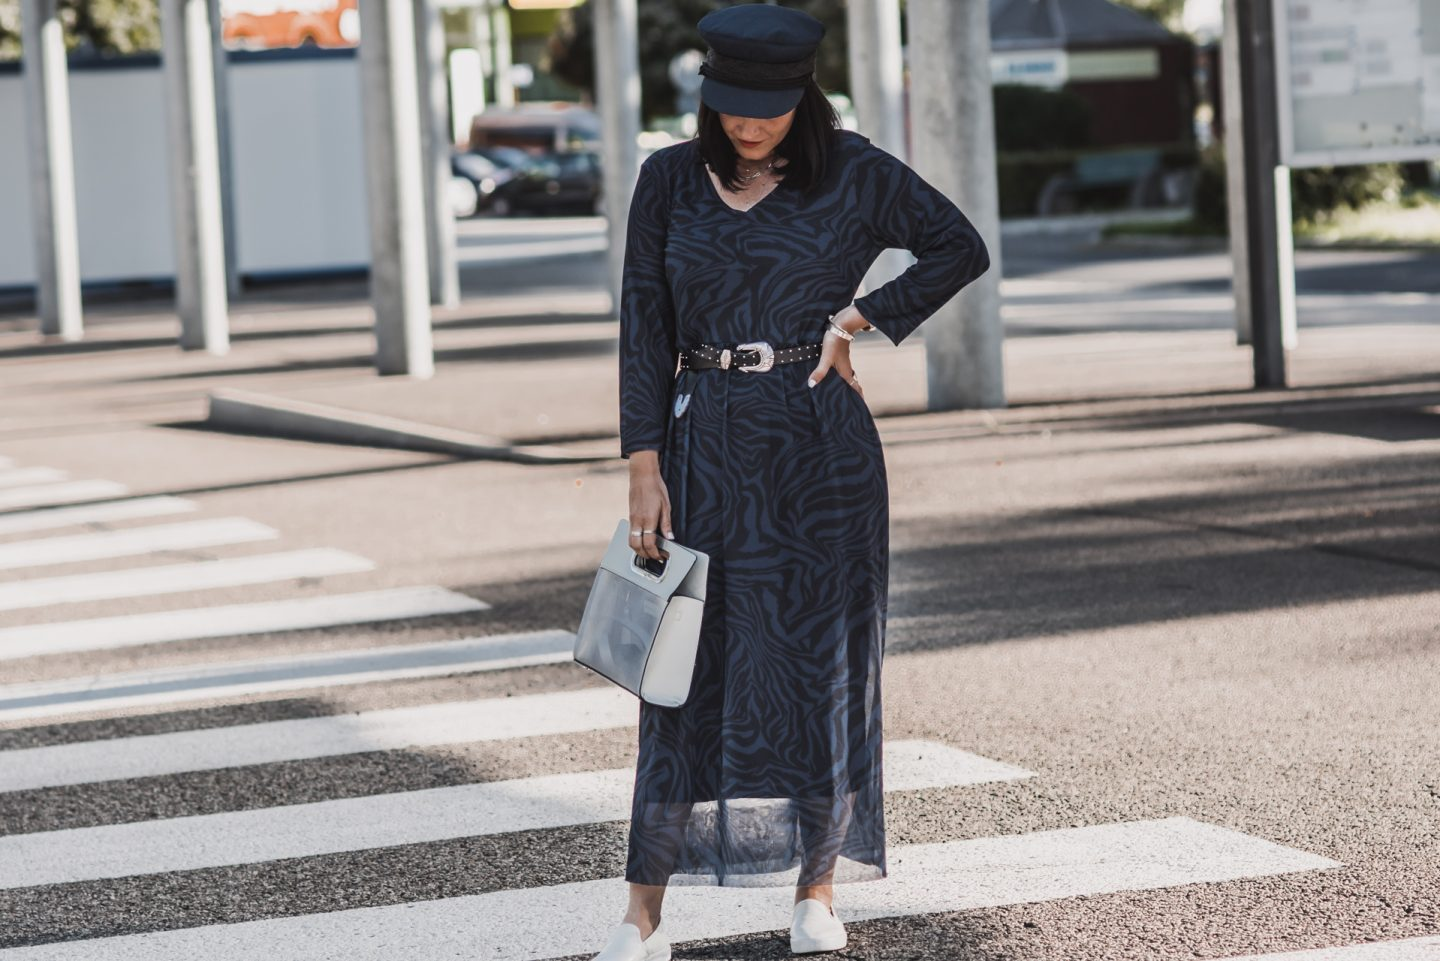 AUTUMN MUST-HAVE MAXI DRESS - THAT'S WHY WE NEED ONE